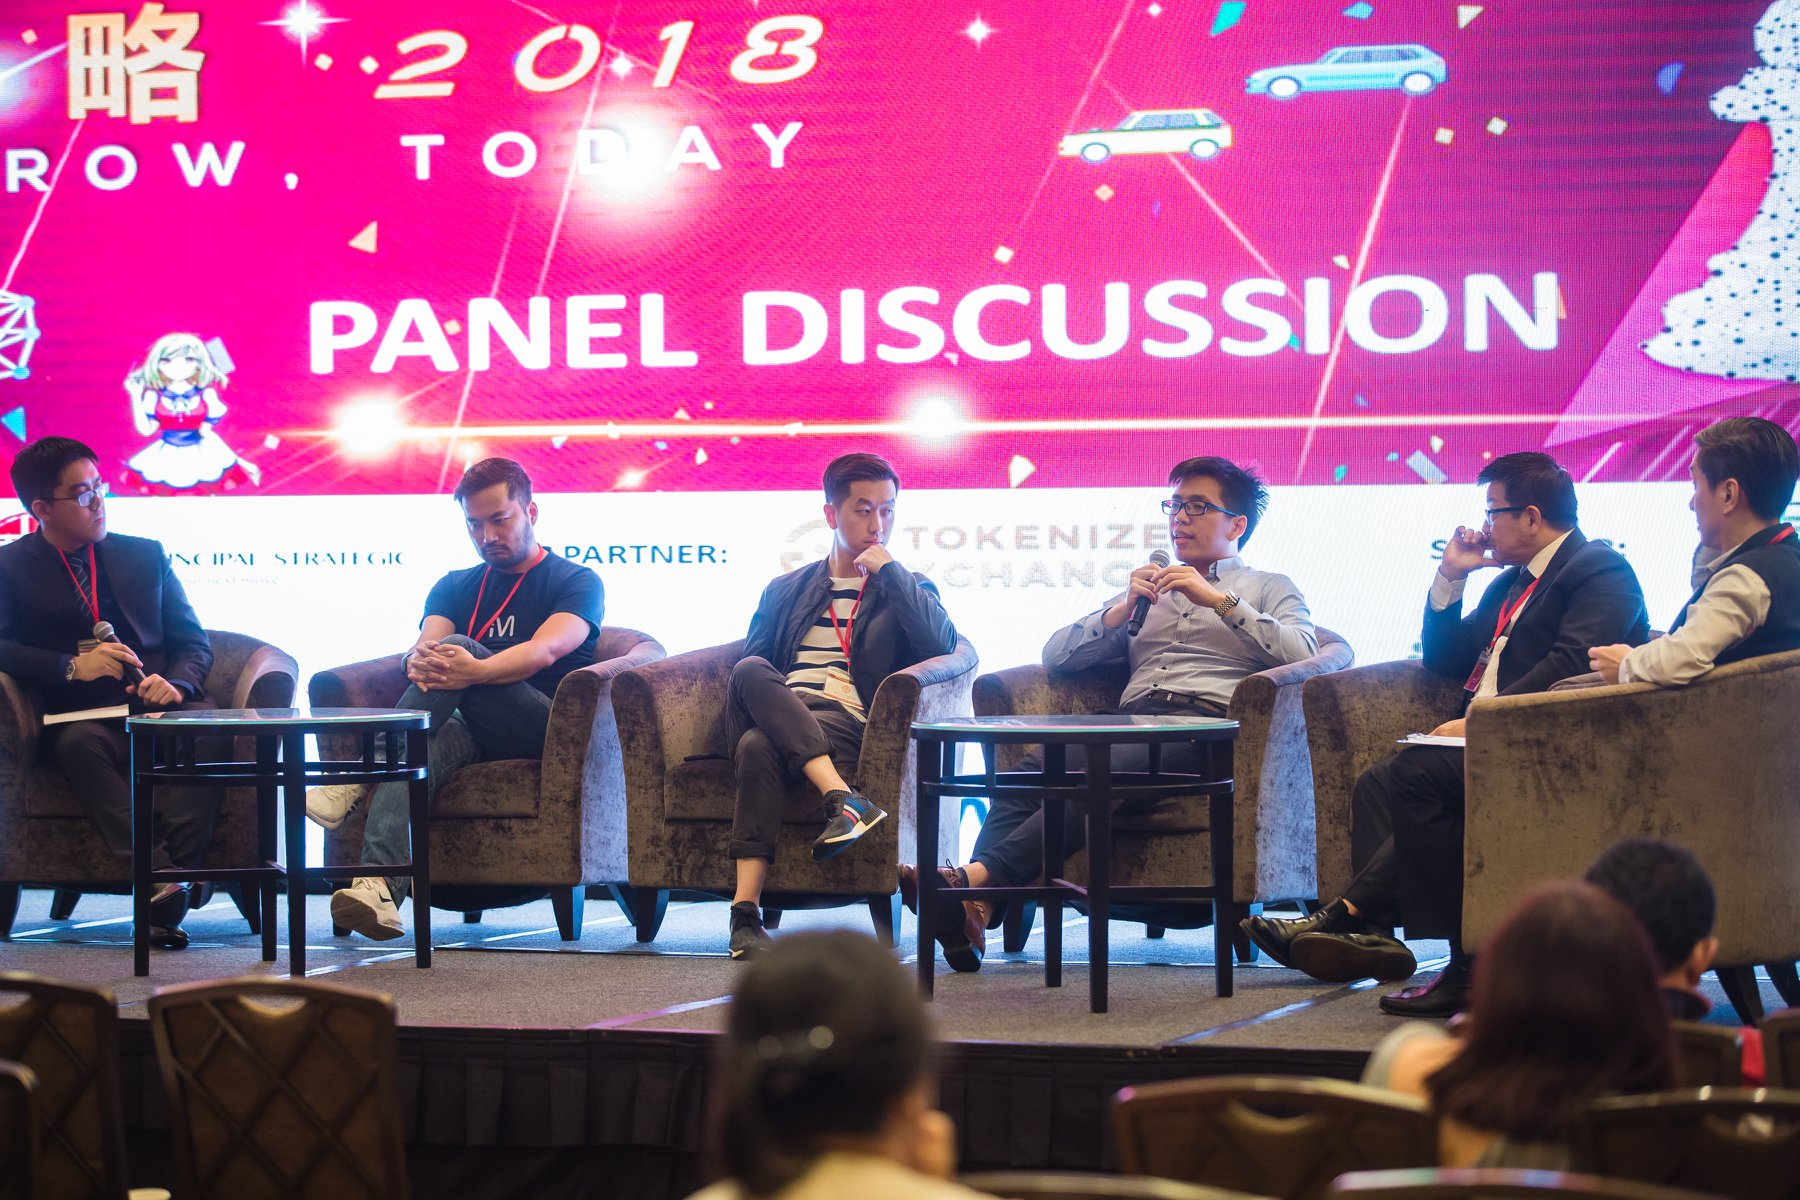 Principality Blockchain Conference hosted by Principal Strategic Panel Discussion